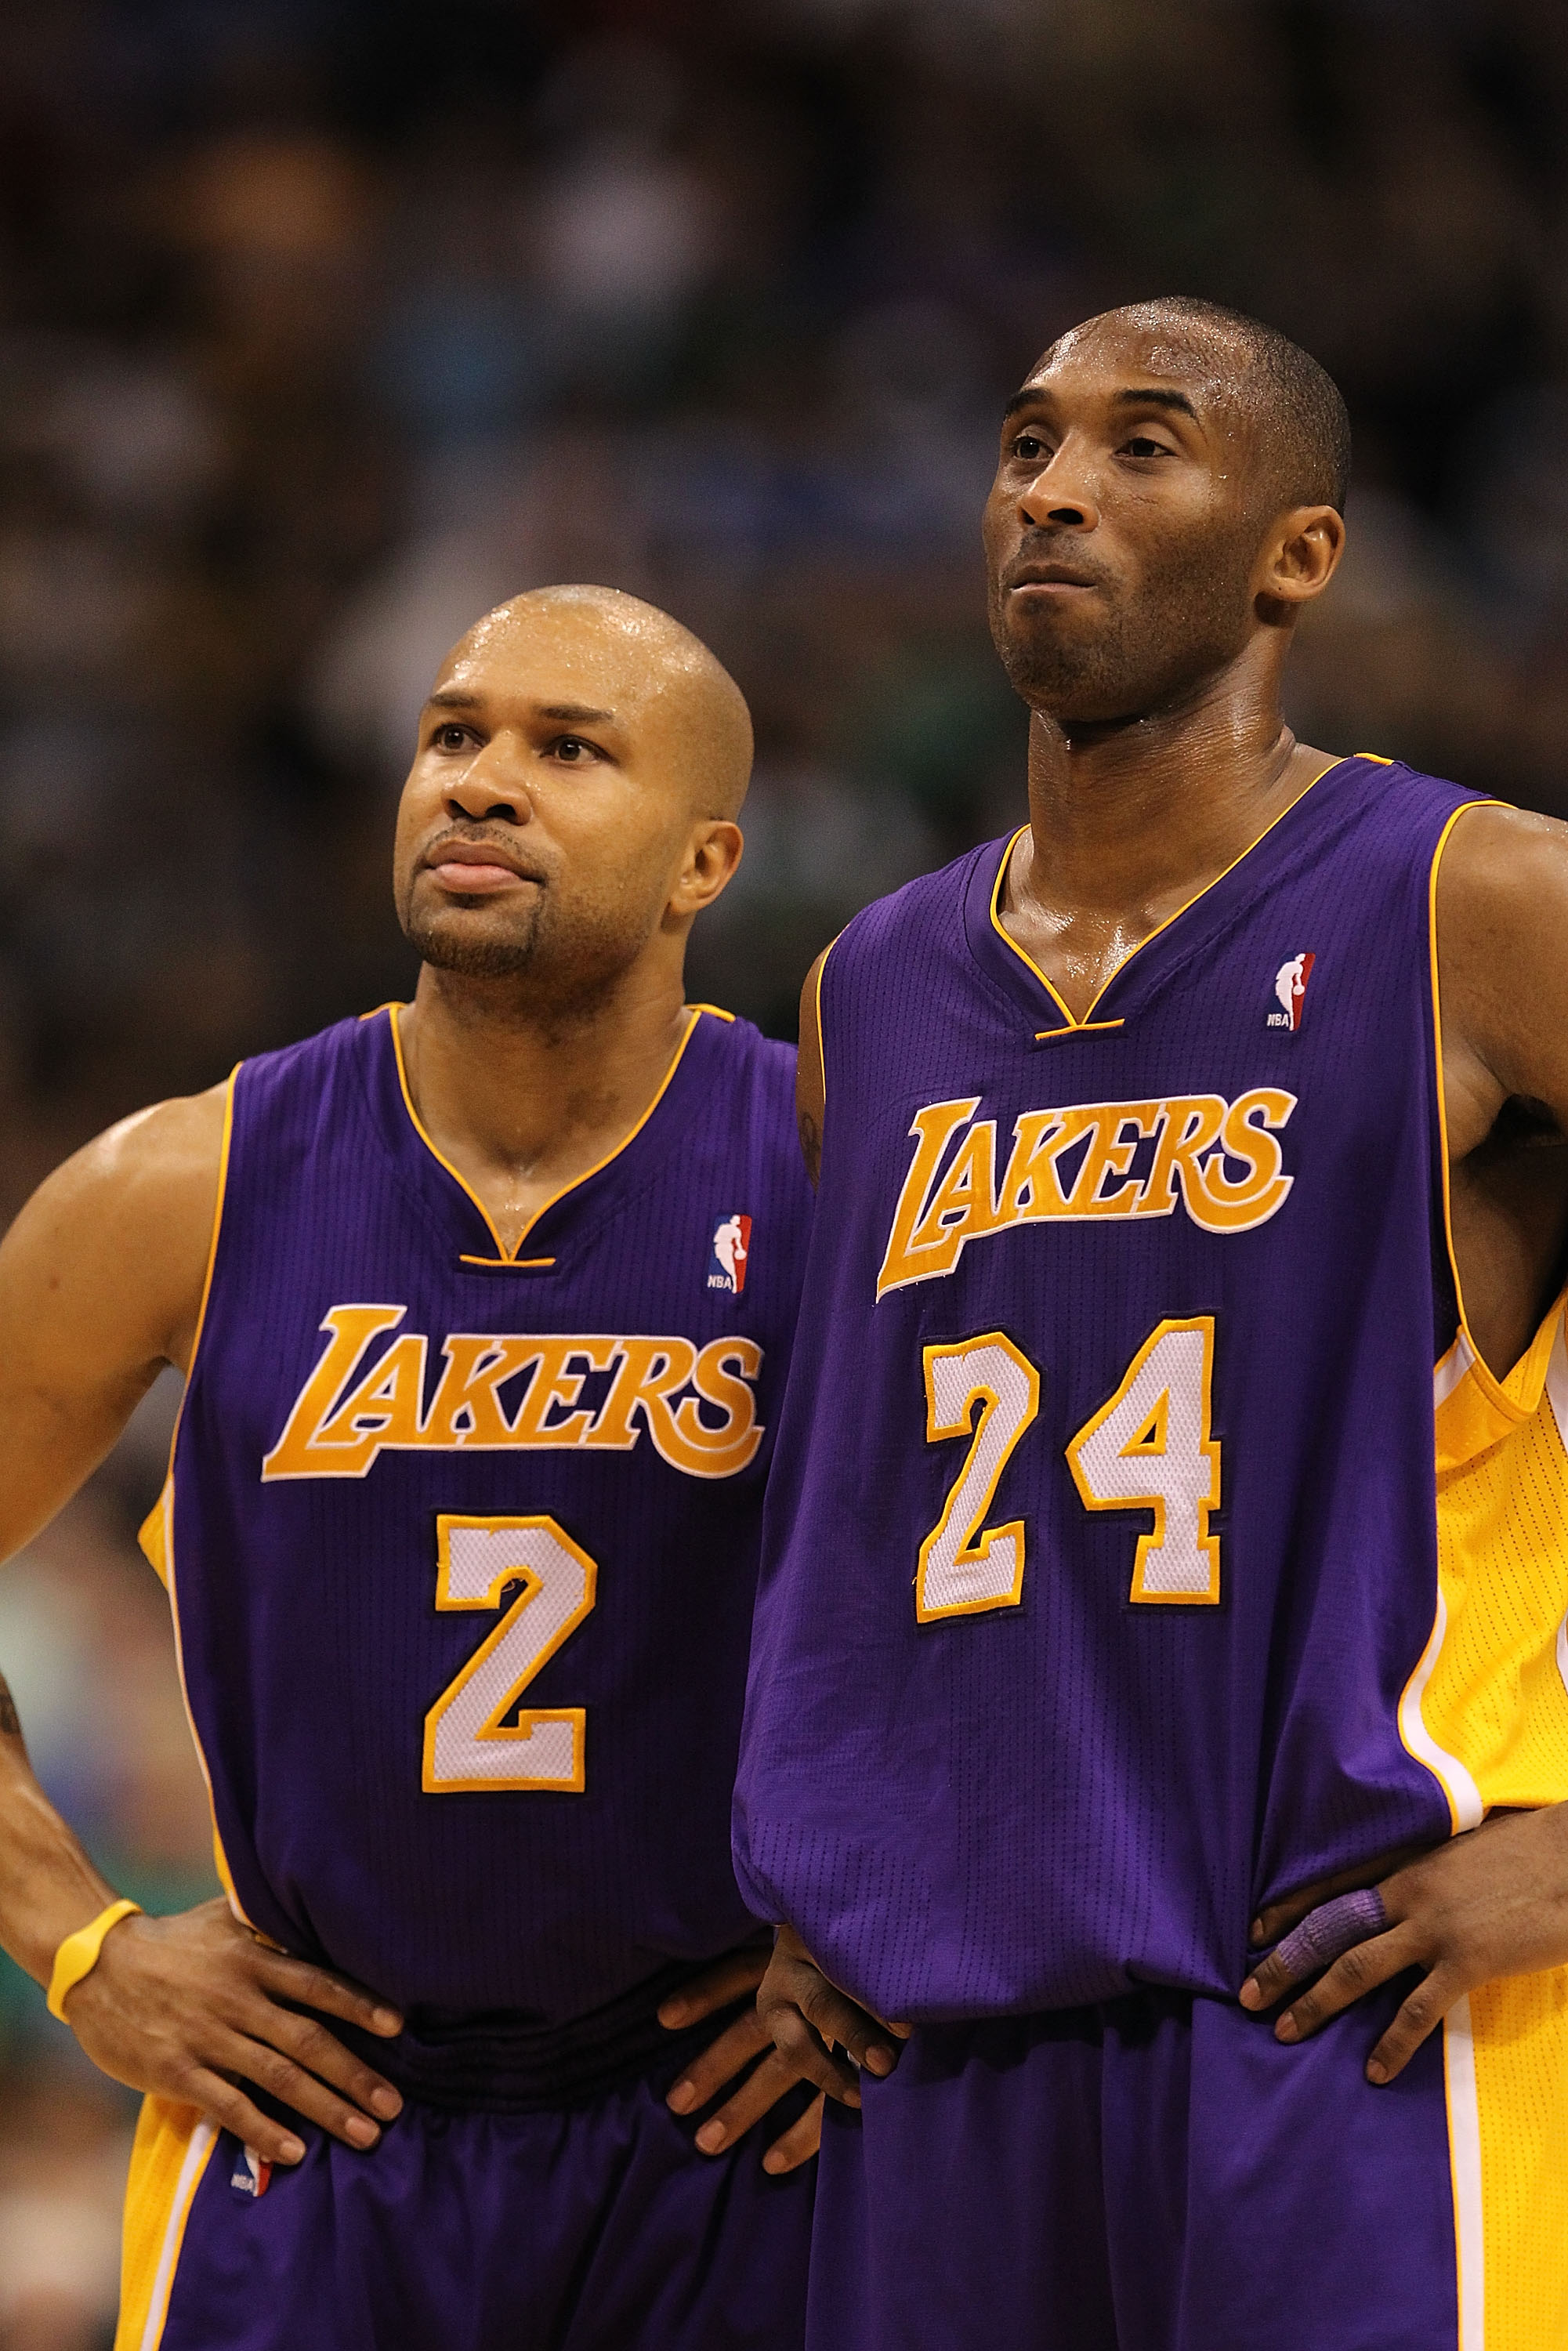 DALLAS, TX - MARCH 12:  Derek Fisher #2 and Kobe Bryant #24 of the Los Angeles Lakers at American Airlines Center on March 12, 2011 in Dallas, Texas.  NOTE TO USER: User expressly acknowledges and agrees that, by downloading and or using this photograph,